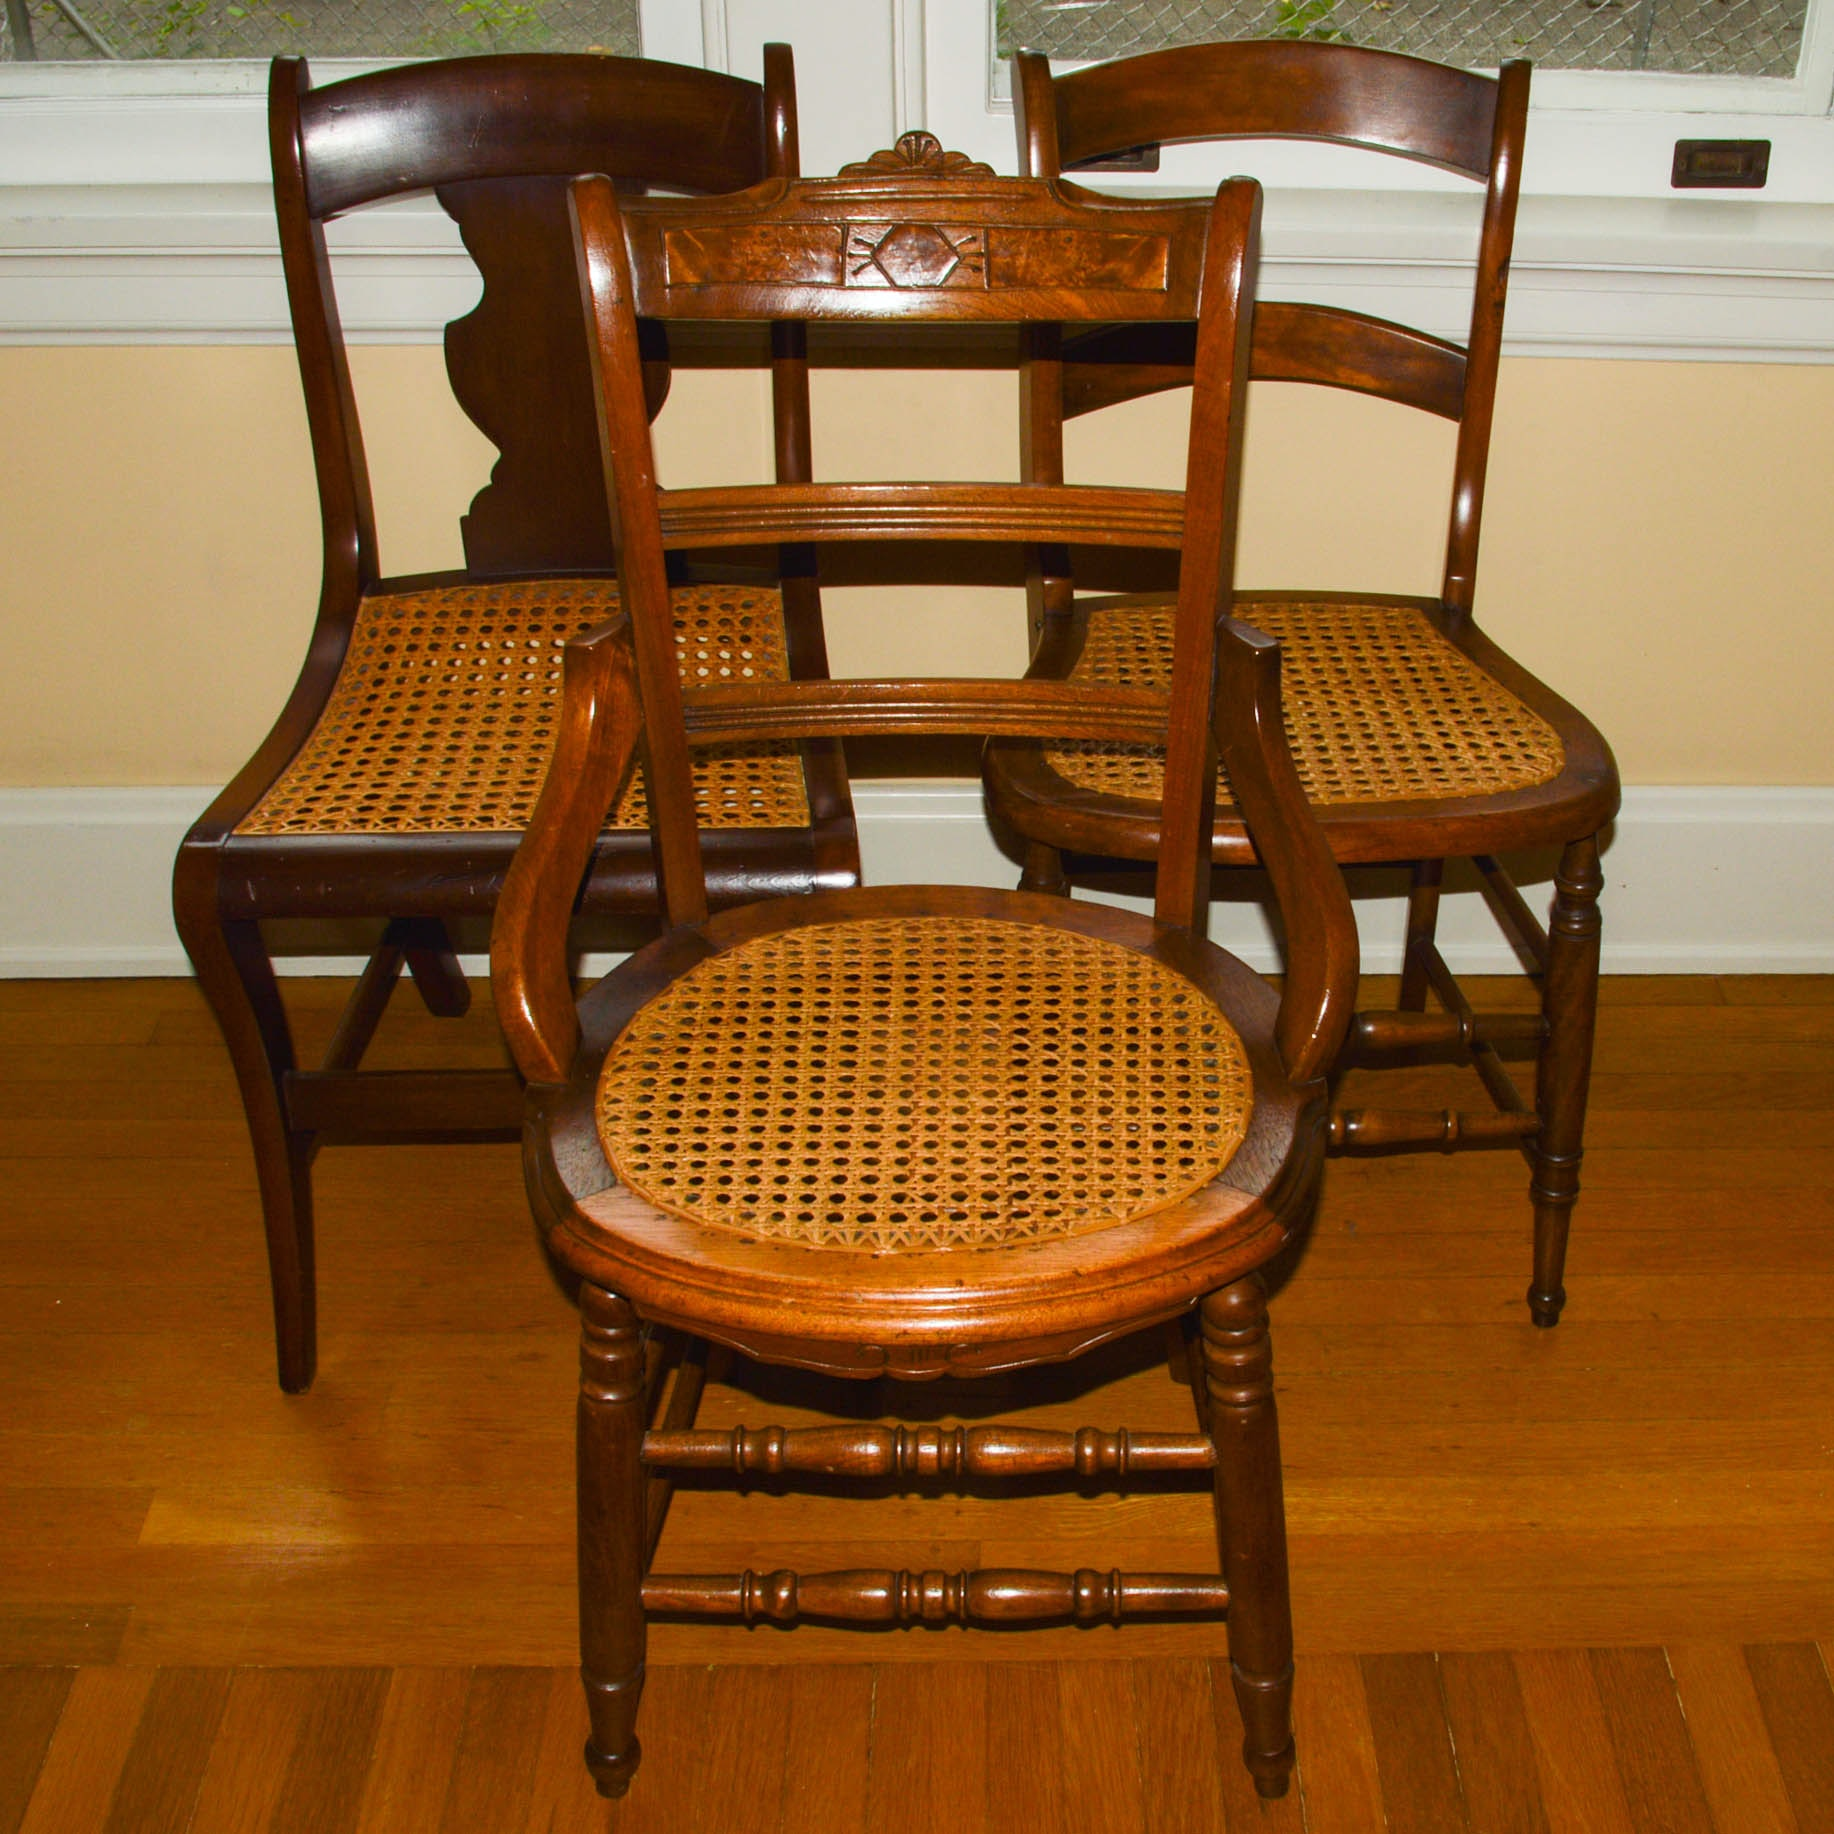 Three Antique Side Chairs with Cane Seats